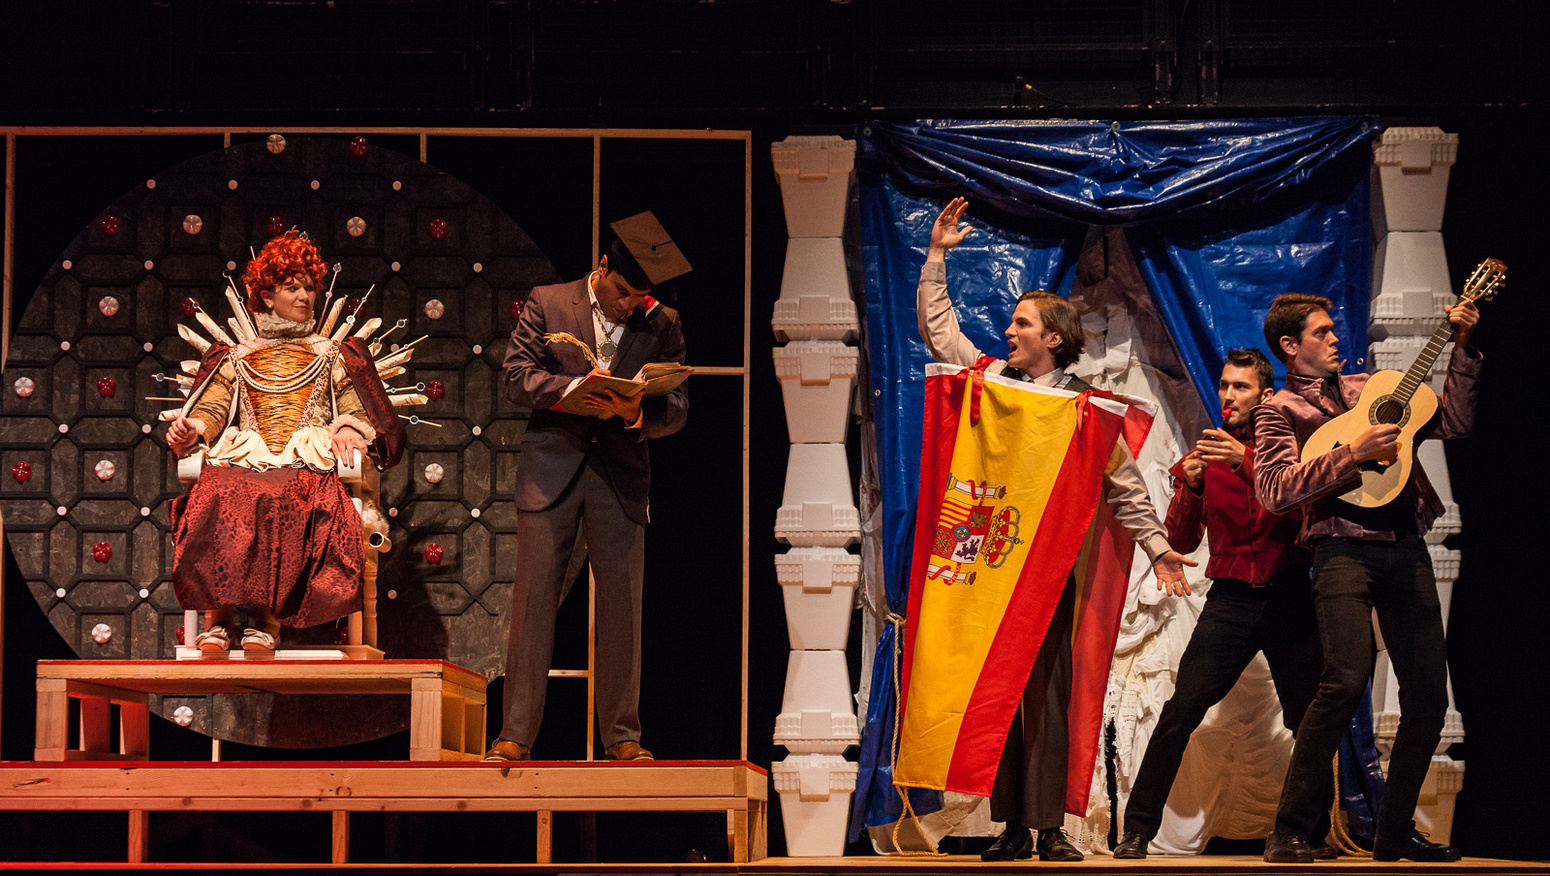 Elizabeth (Regan Linton) and her adviser Burghley (Danvir Singh) are greeted by the Spanish Ambassador (Tom Patterson).